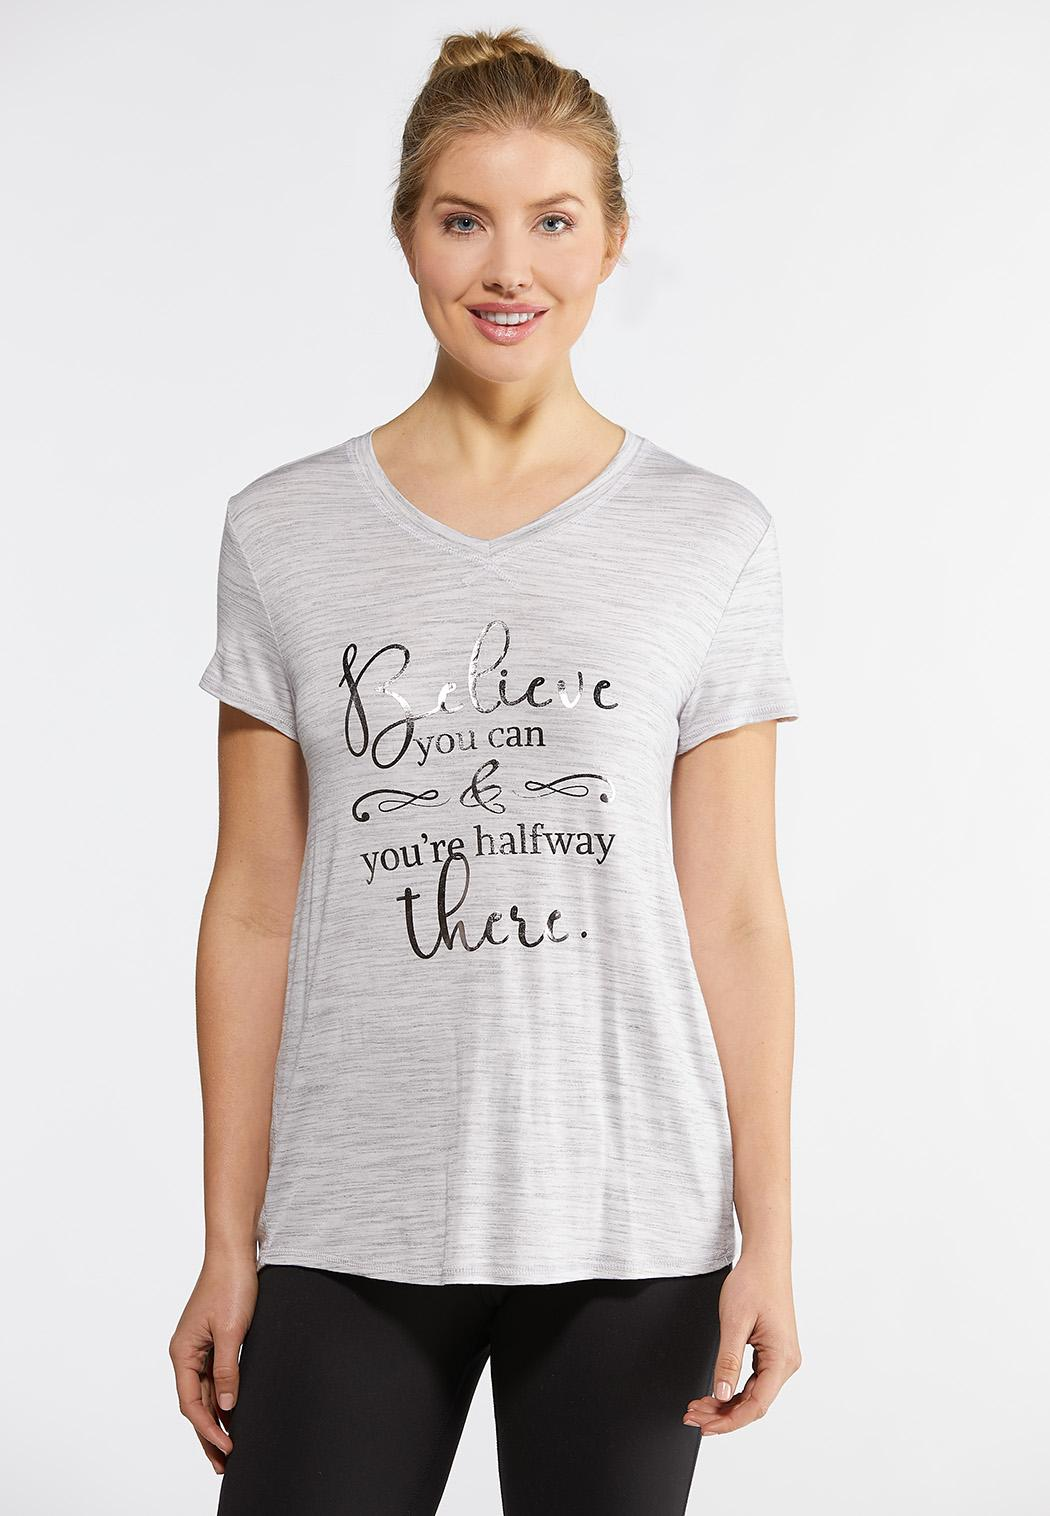 Plus Size Believe You Can Tee Tops Cato Fashions